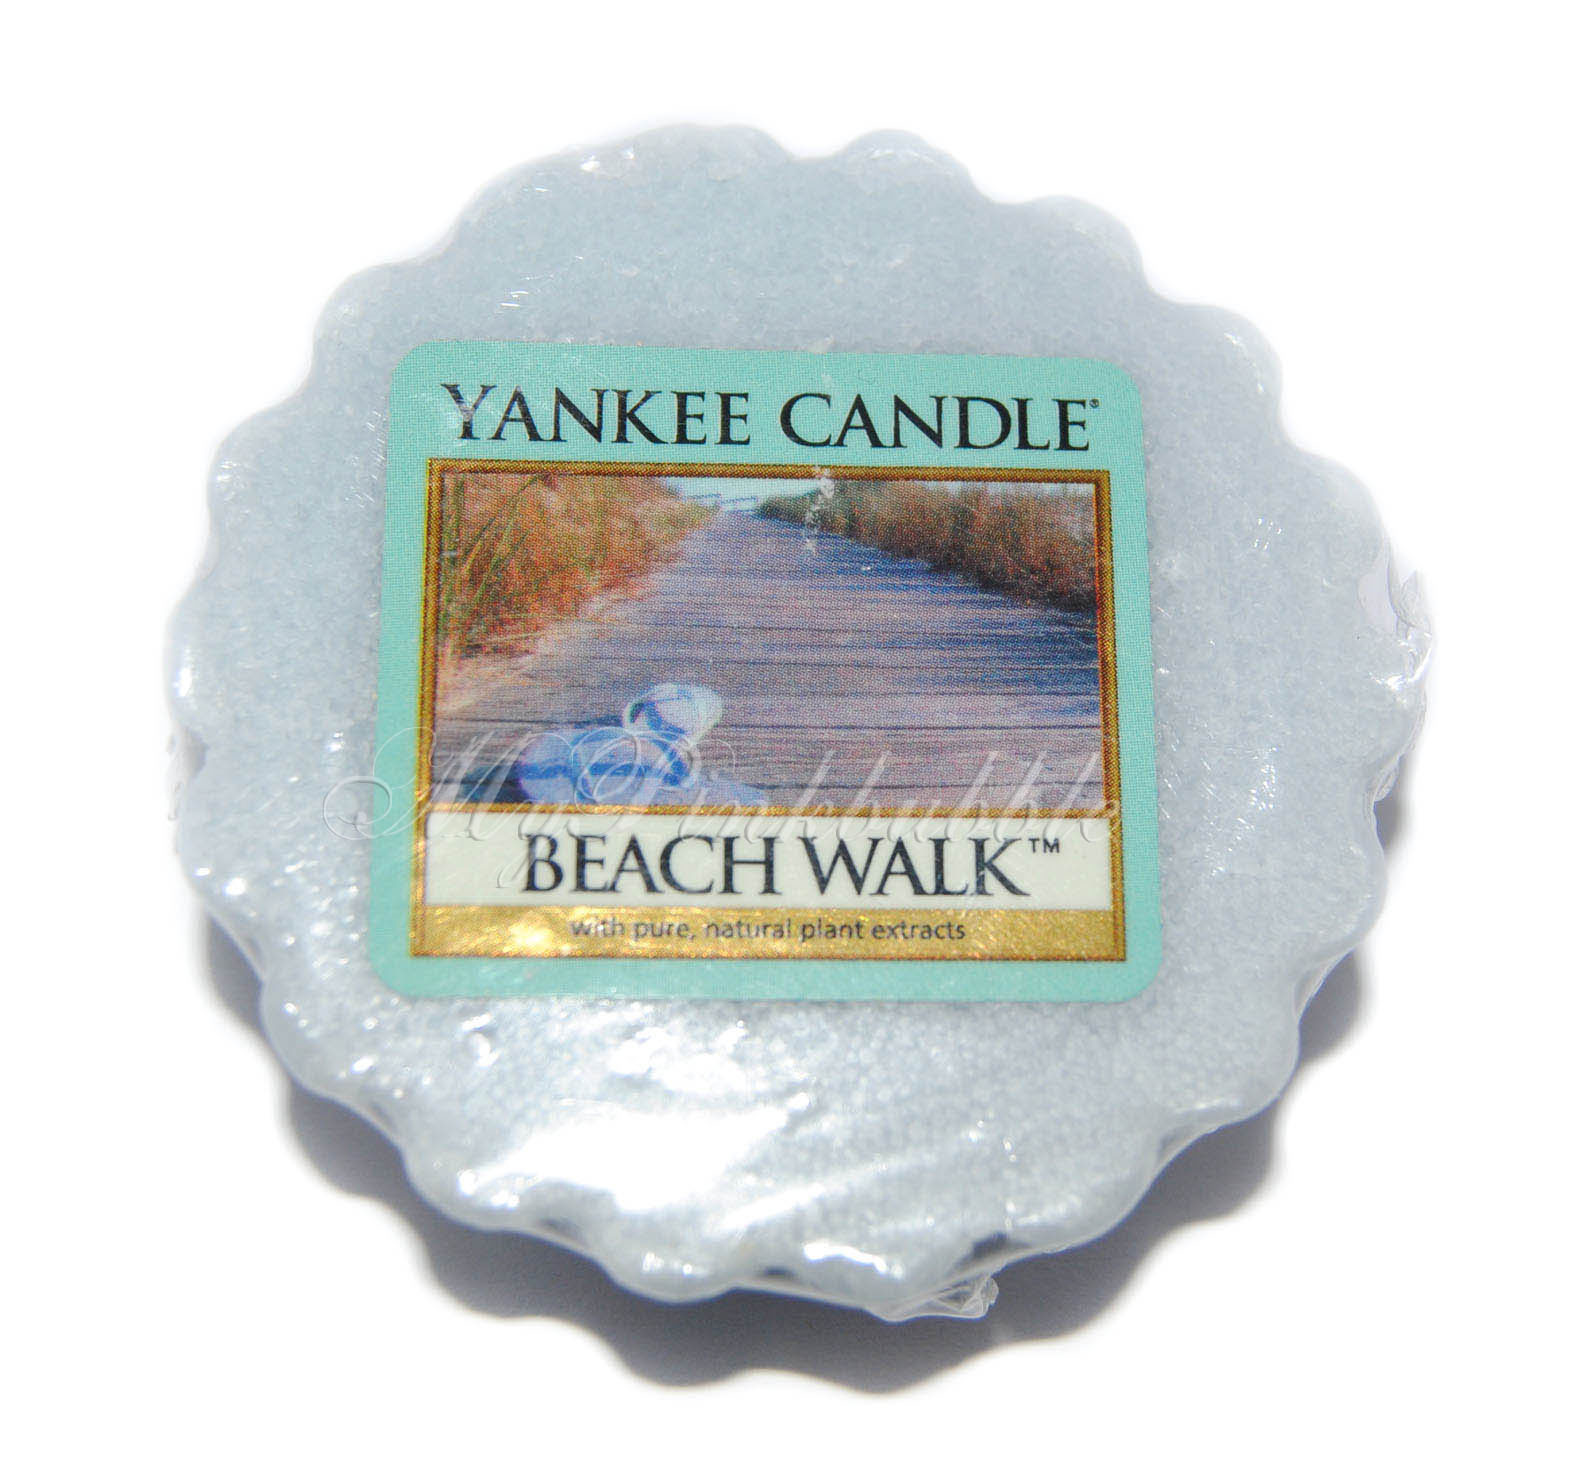 Yankee Candle Beach walk